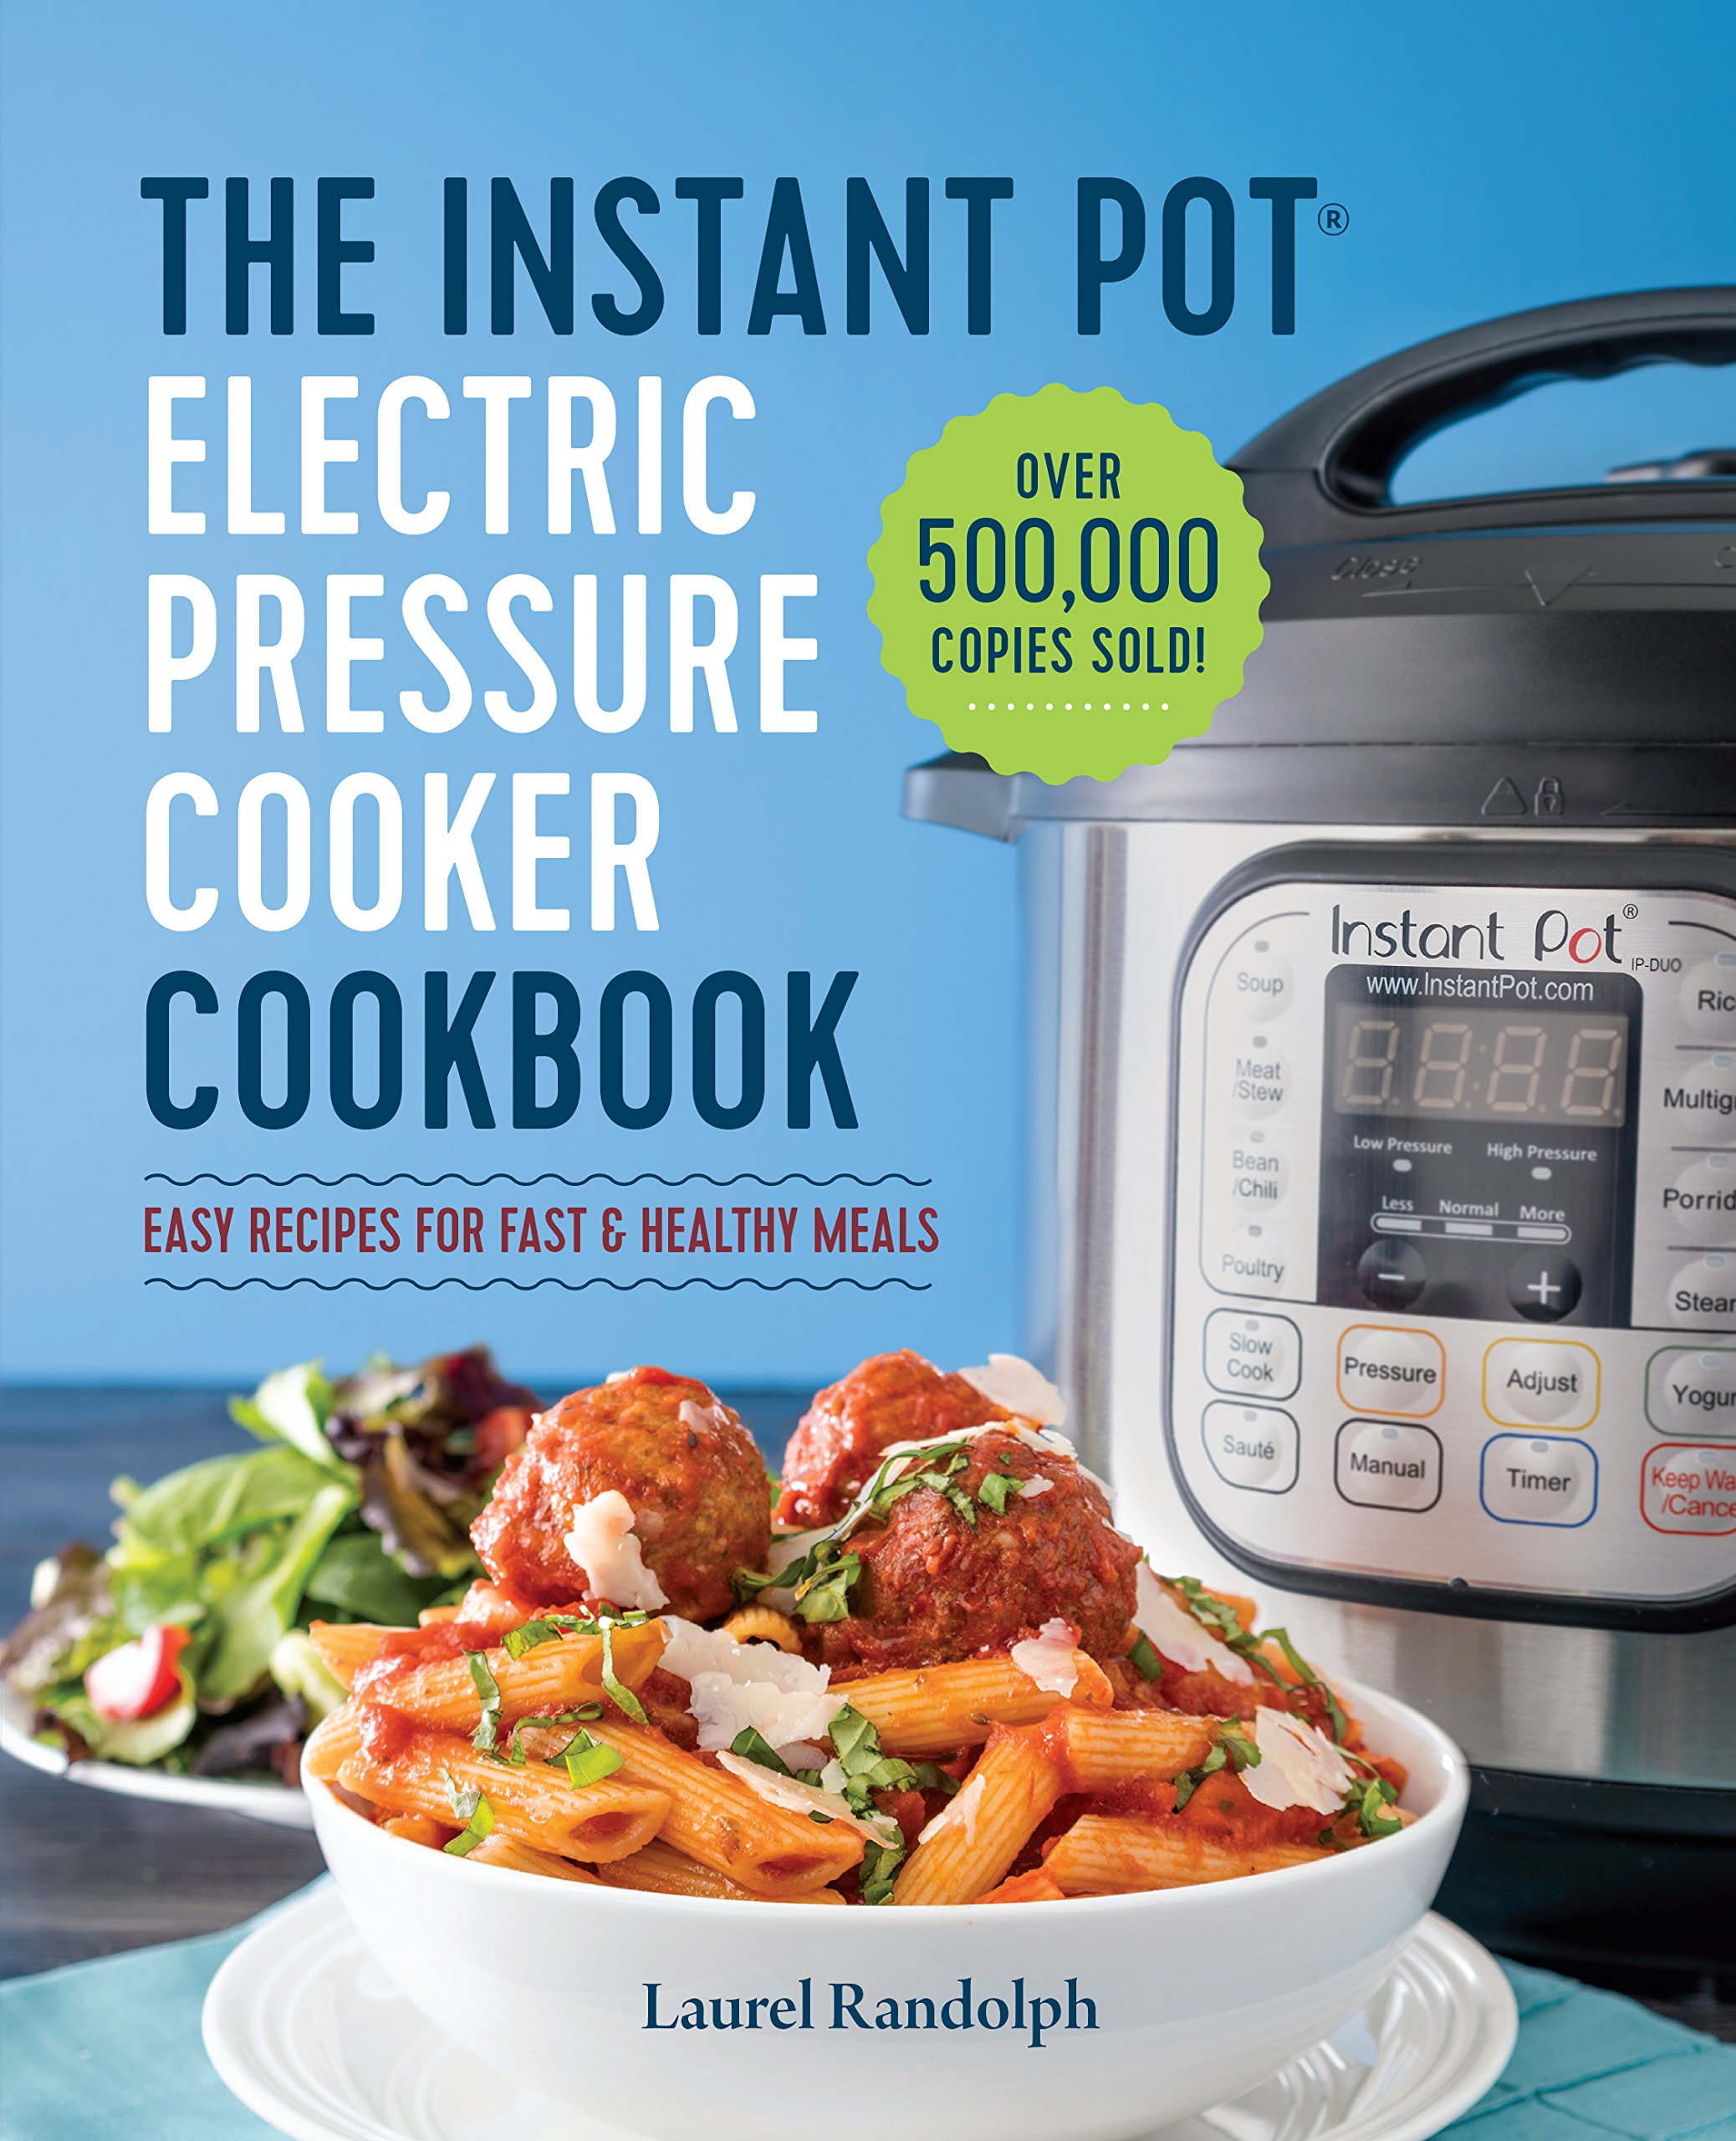 best books to read in 2018 Amazon the instant pot electric pressure cooker cookbook laurel randolph